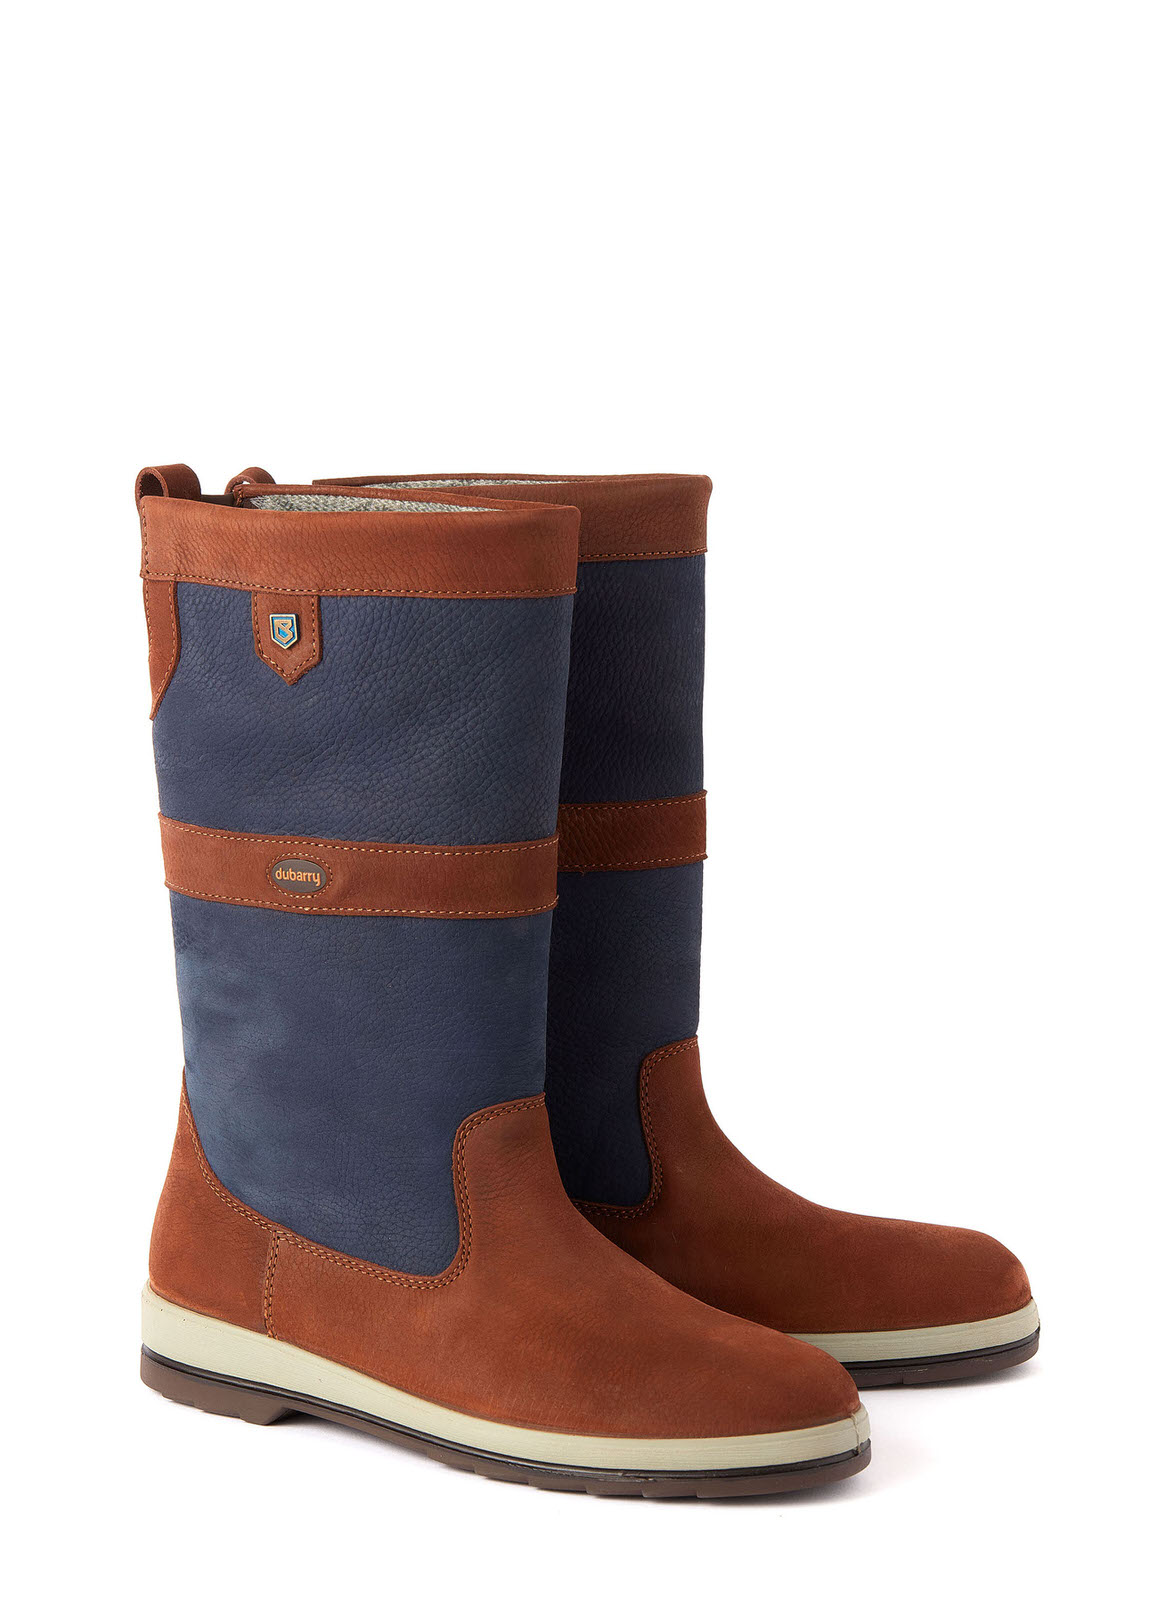 Ultima Sailing Boot - Navy/Brown